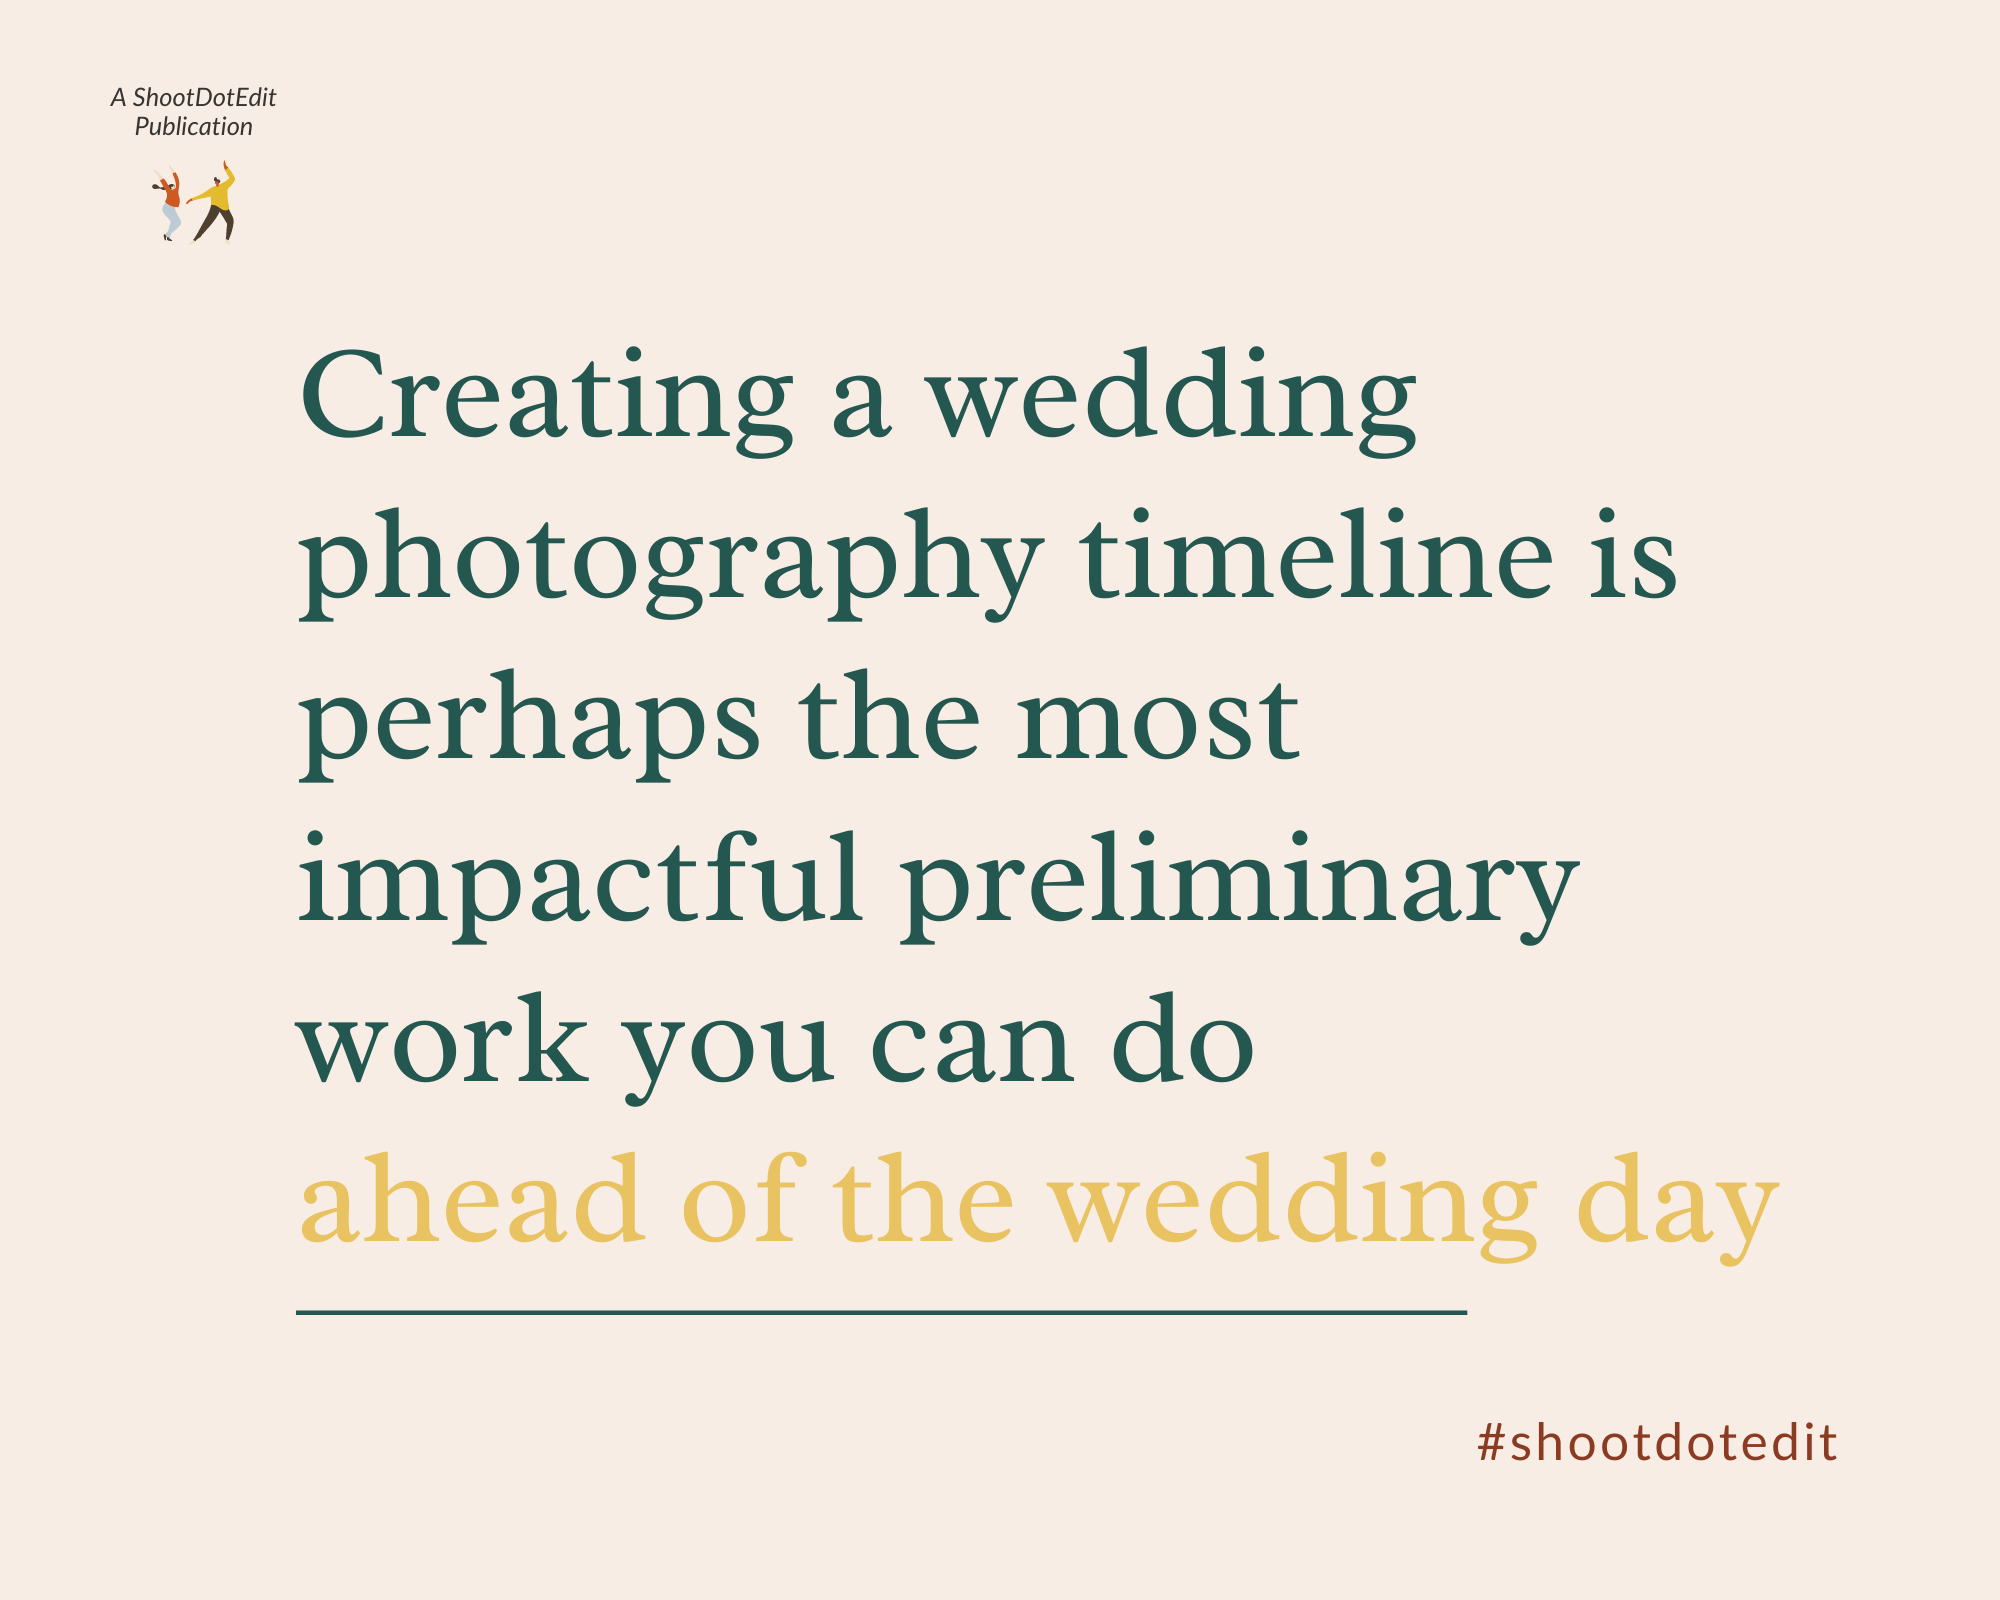 Infographic stating creating a wedding photography timeline is perhaps the most impactful preliminary work you can do ahead of the wedding day